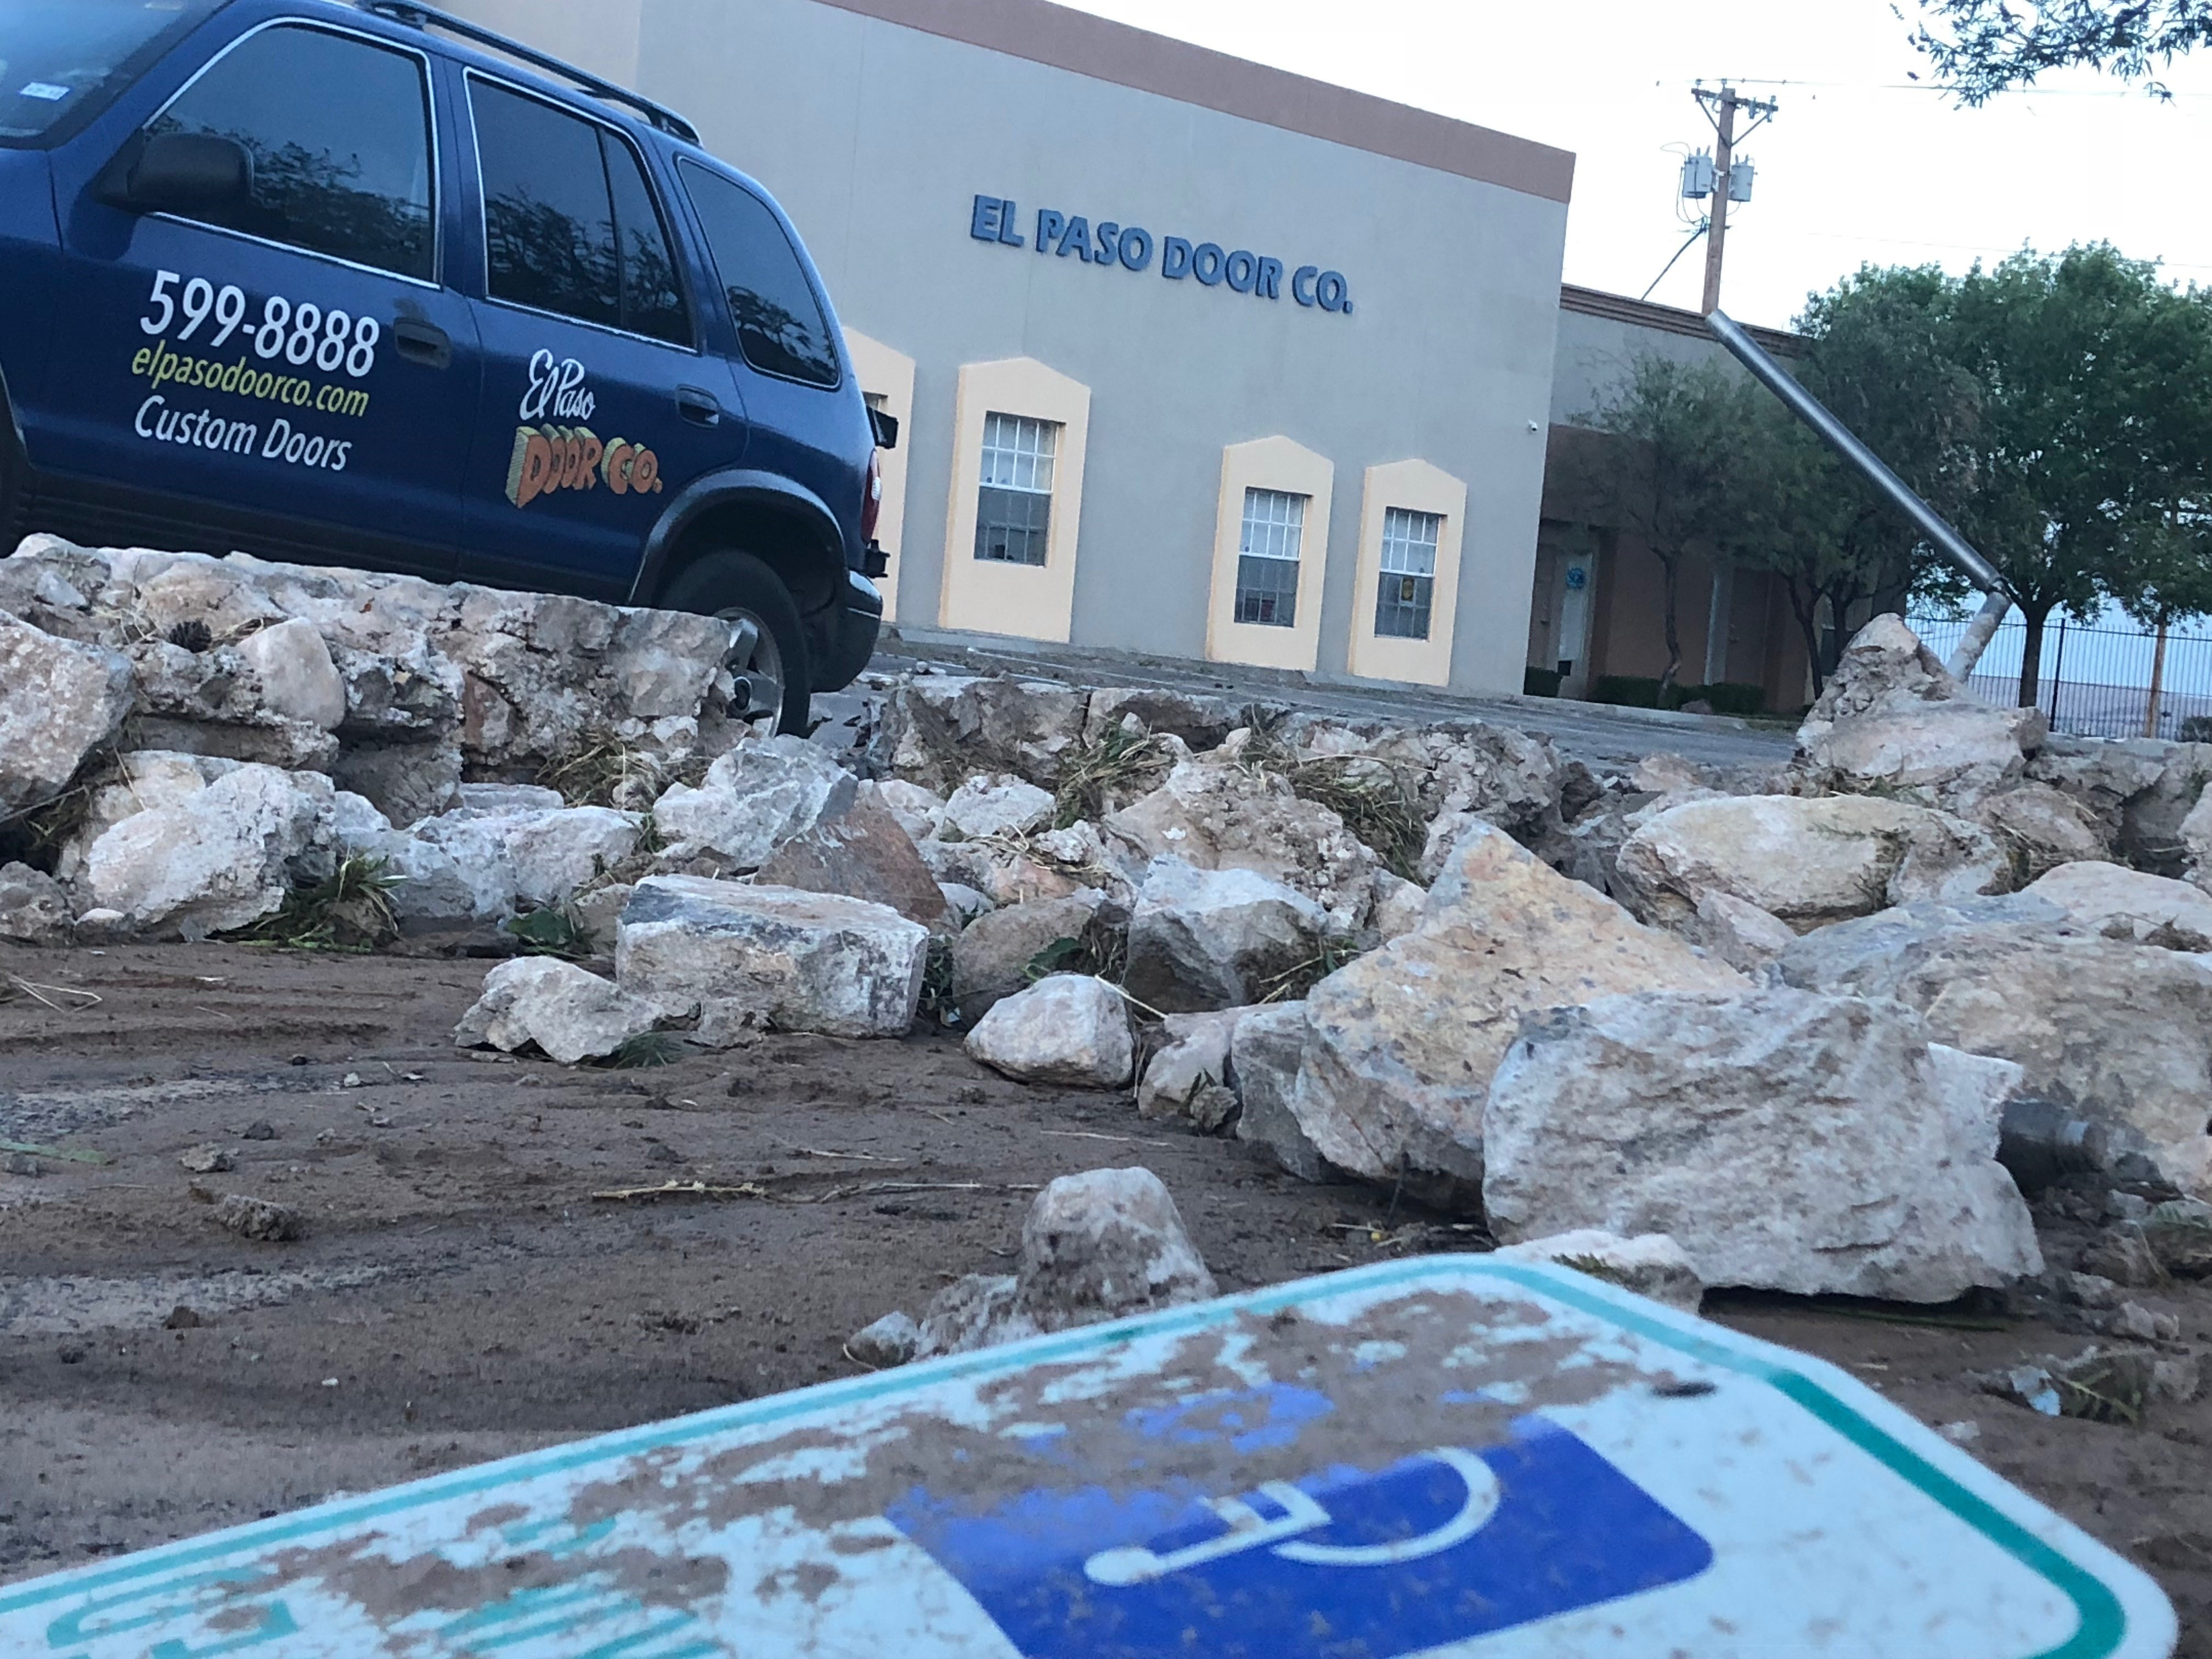 Delicieux Cleanup Efforts Underway In West El Paso Following Thunderstorm